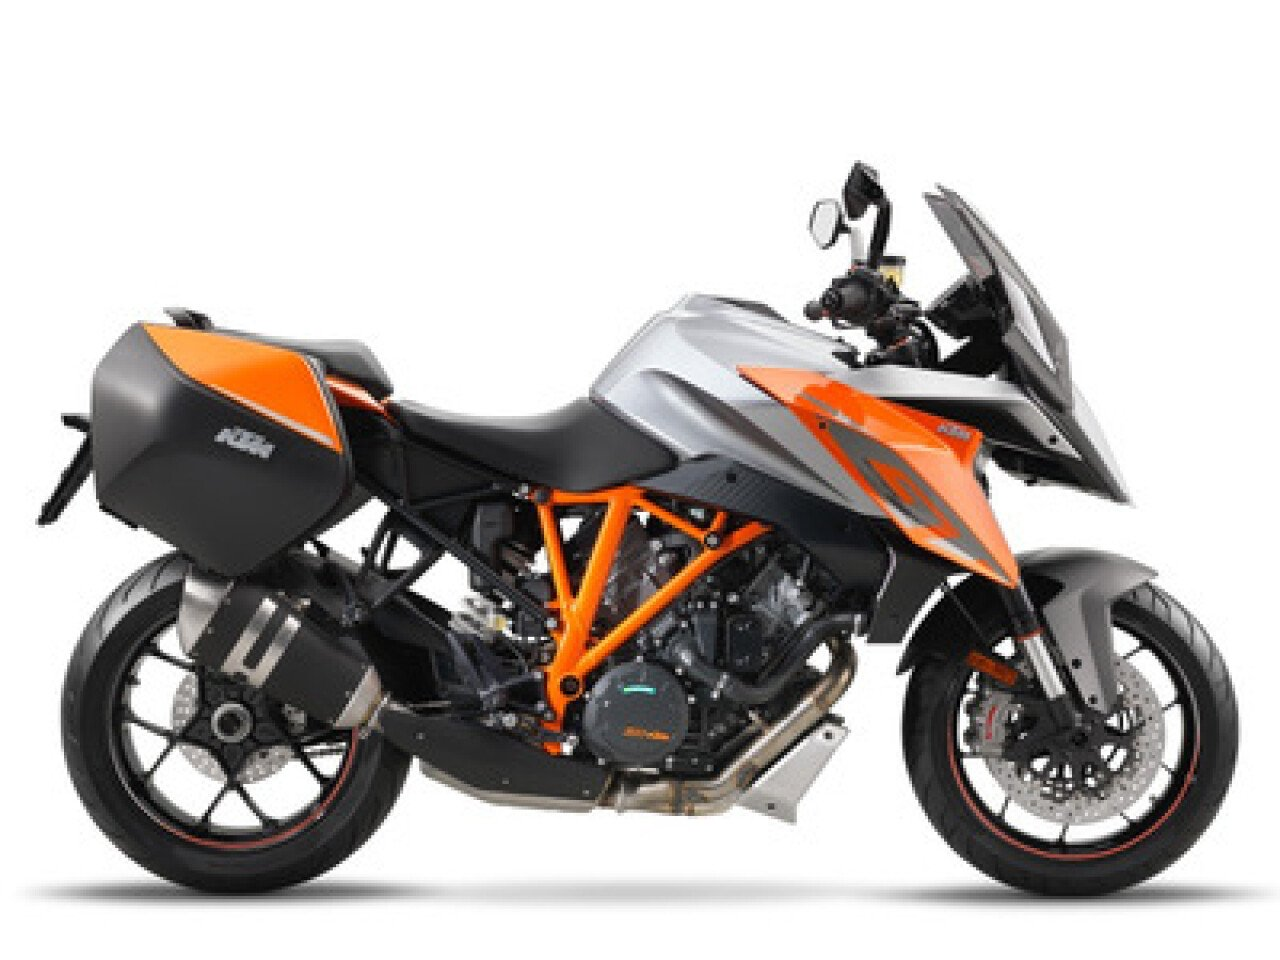 Ktm Motorcycles For Sale Fresno Ca >> 2017 Ktm 1290 Super Duke Gt For Sale Near Fresno California 93710